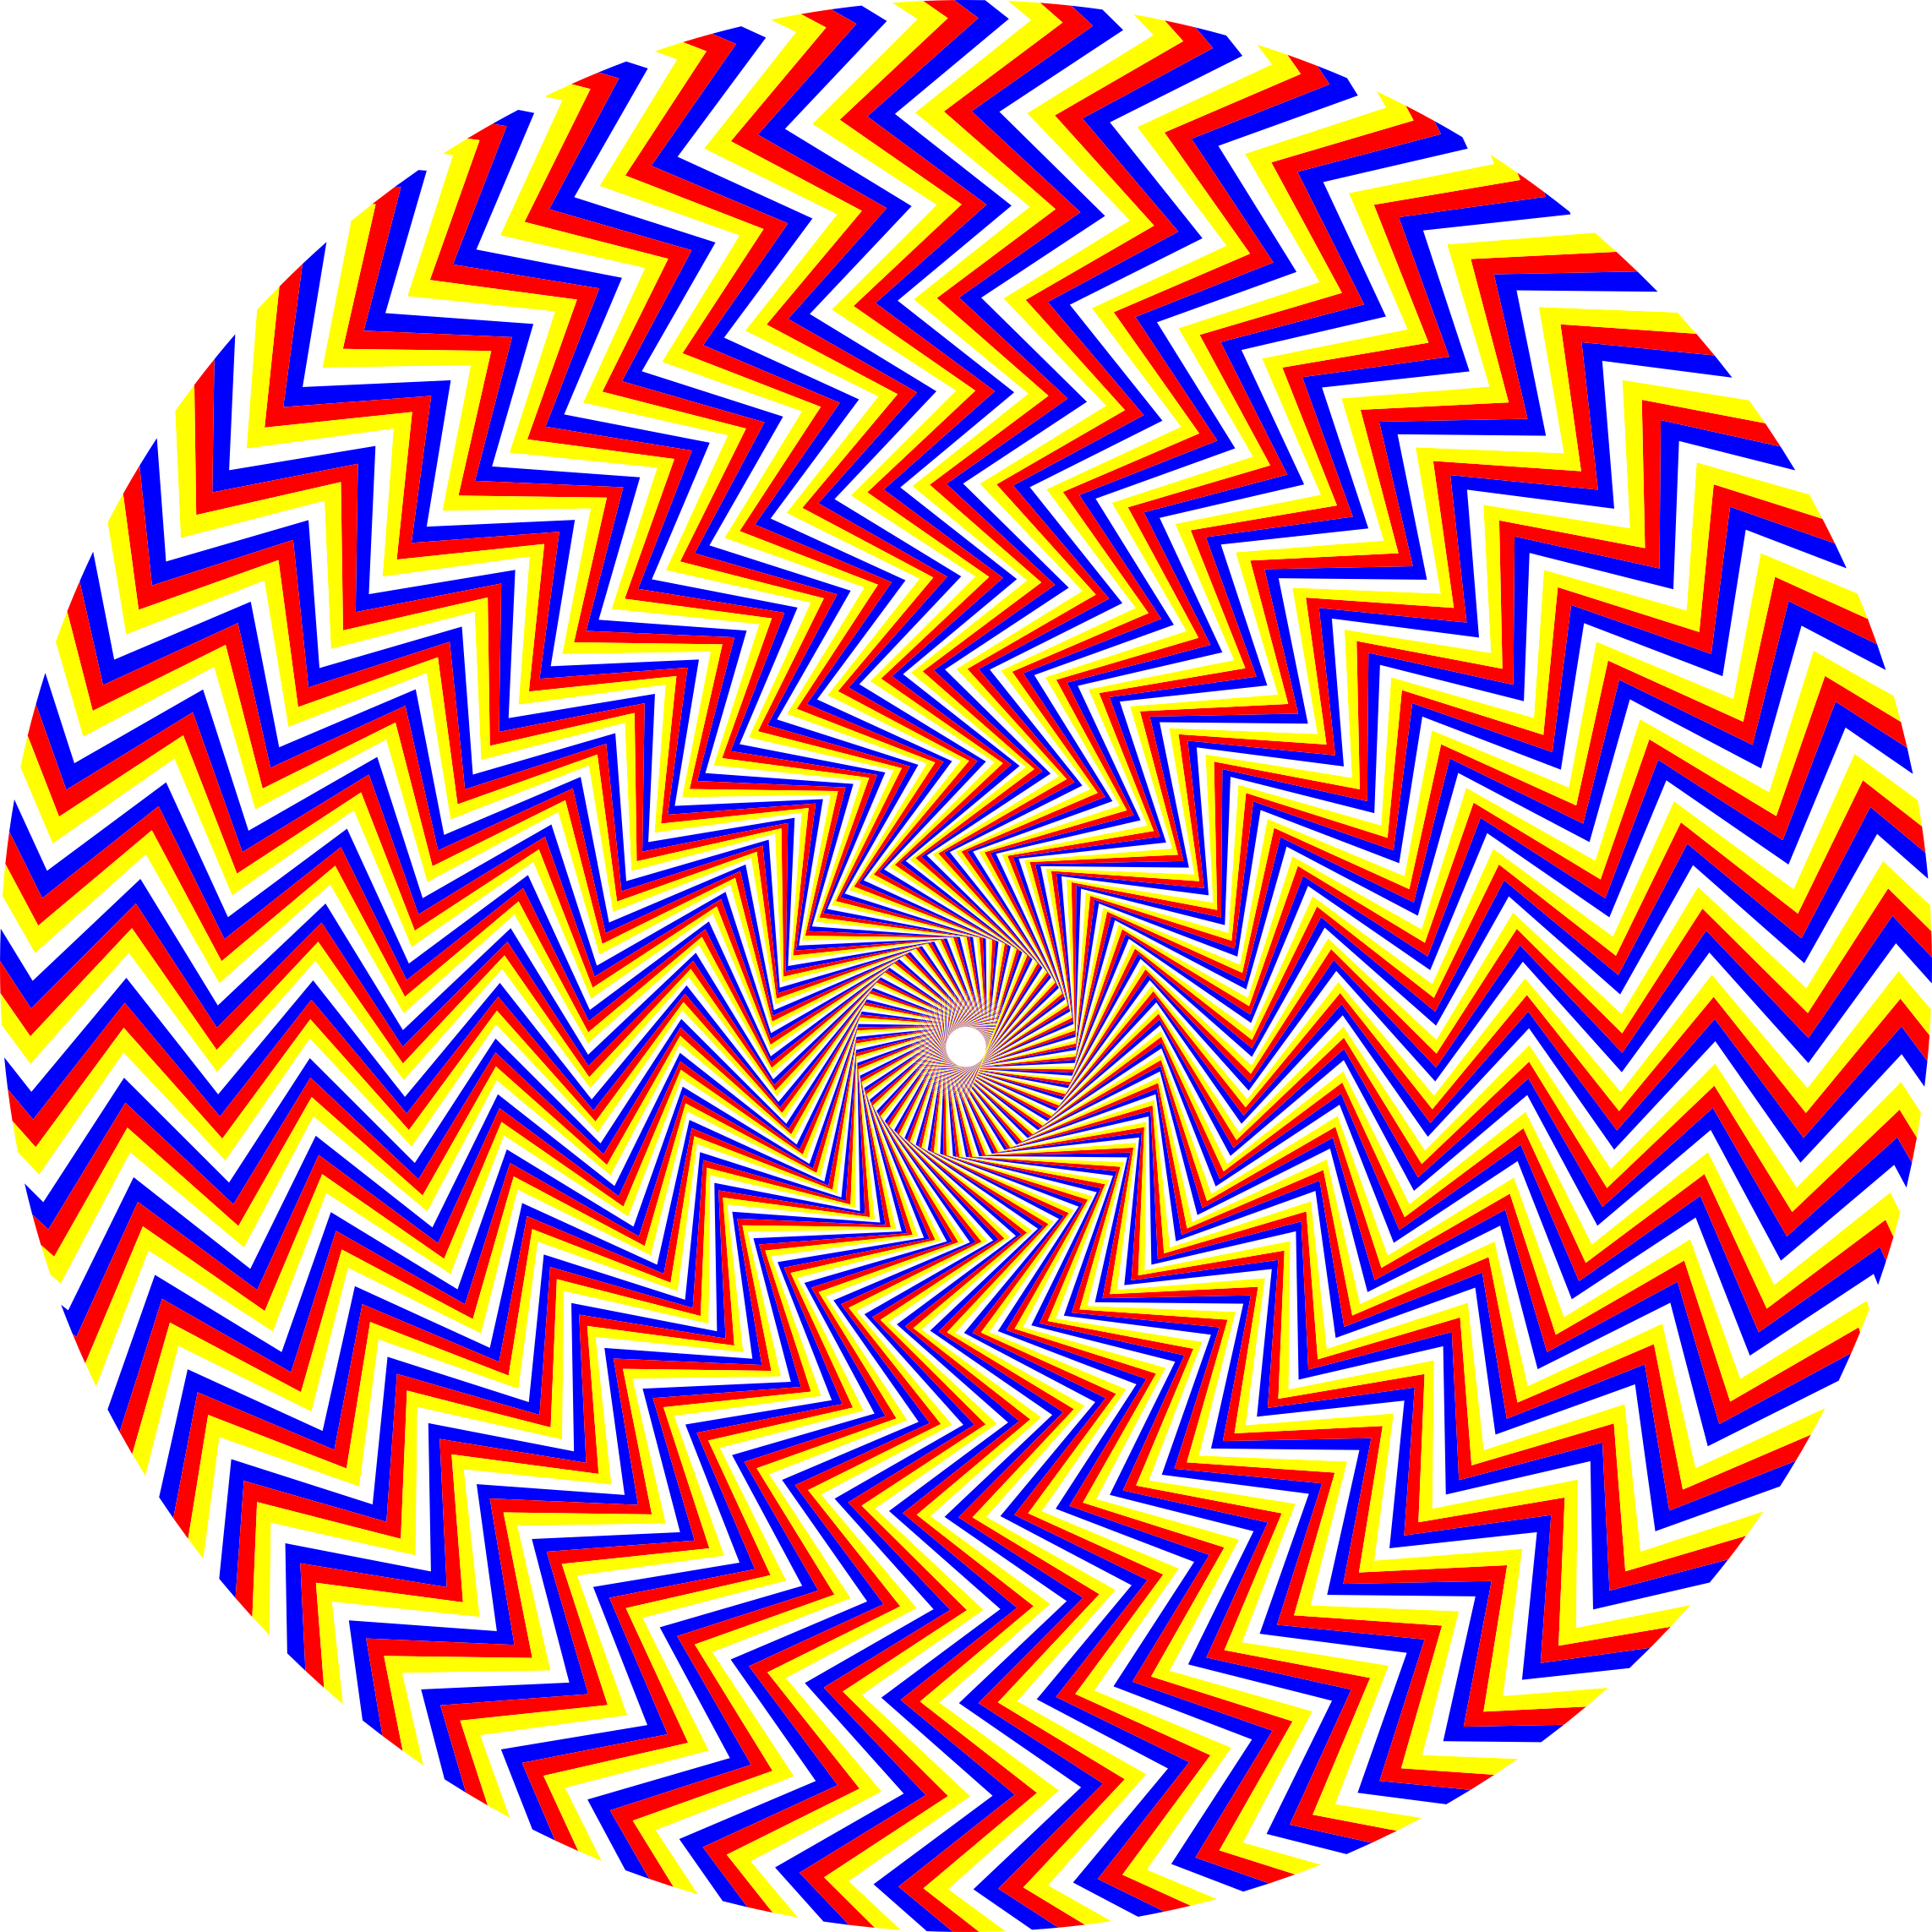 Fraser Spiral Illusion by GDJ